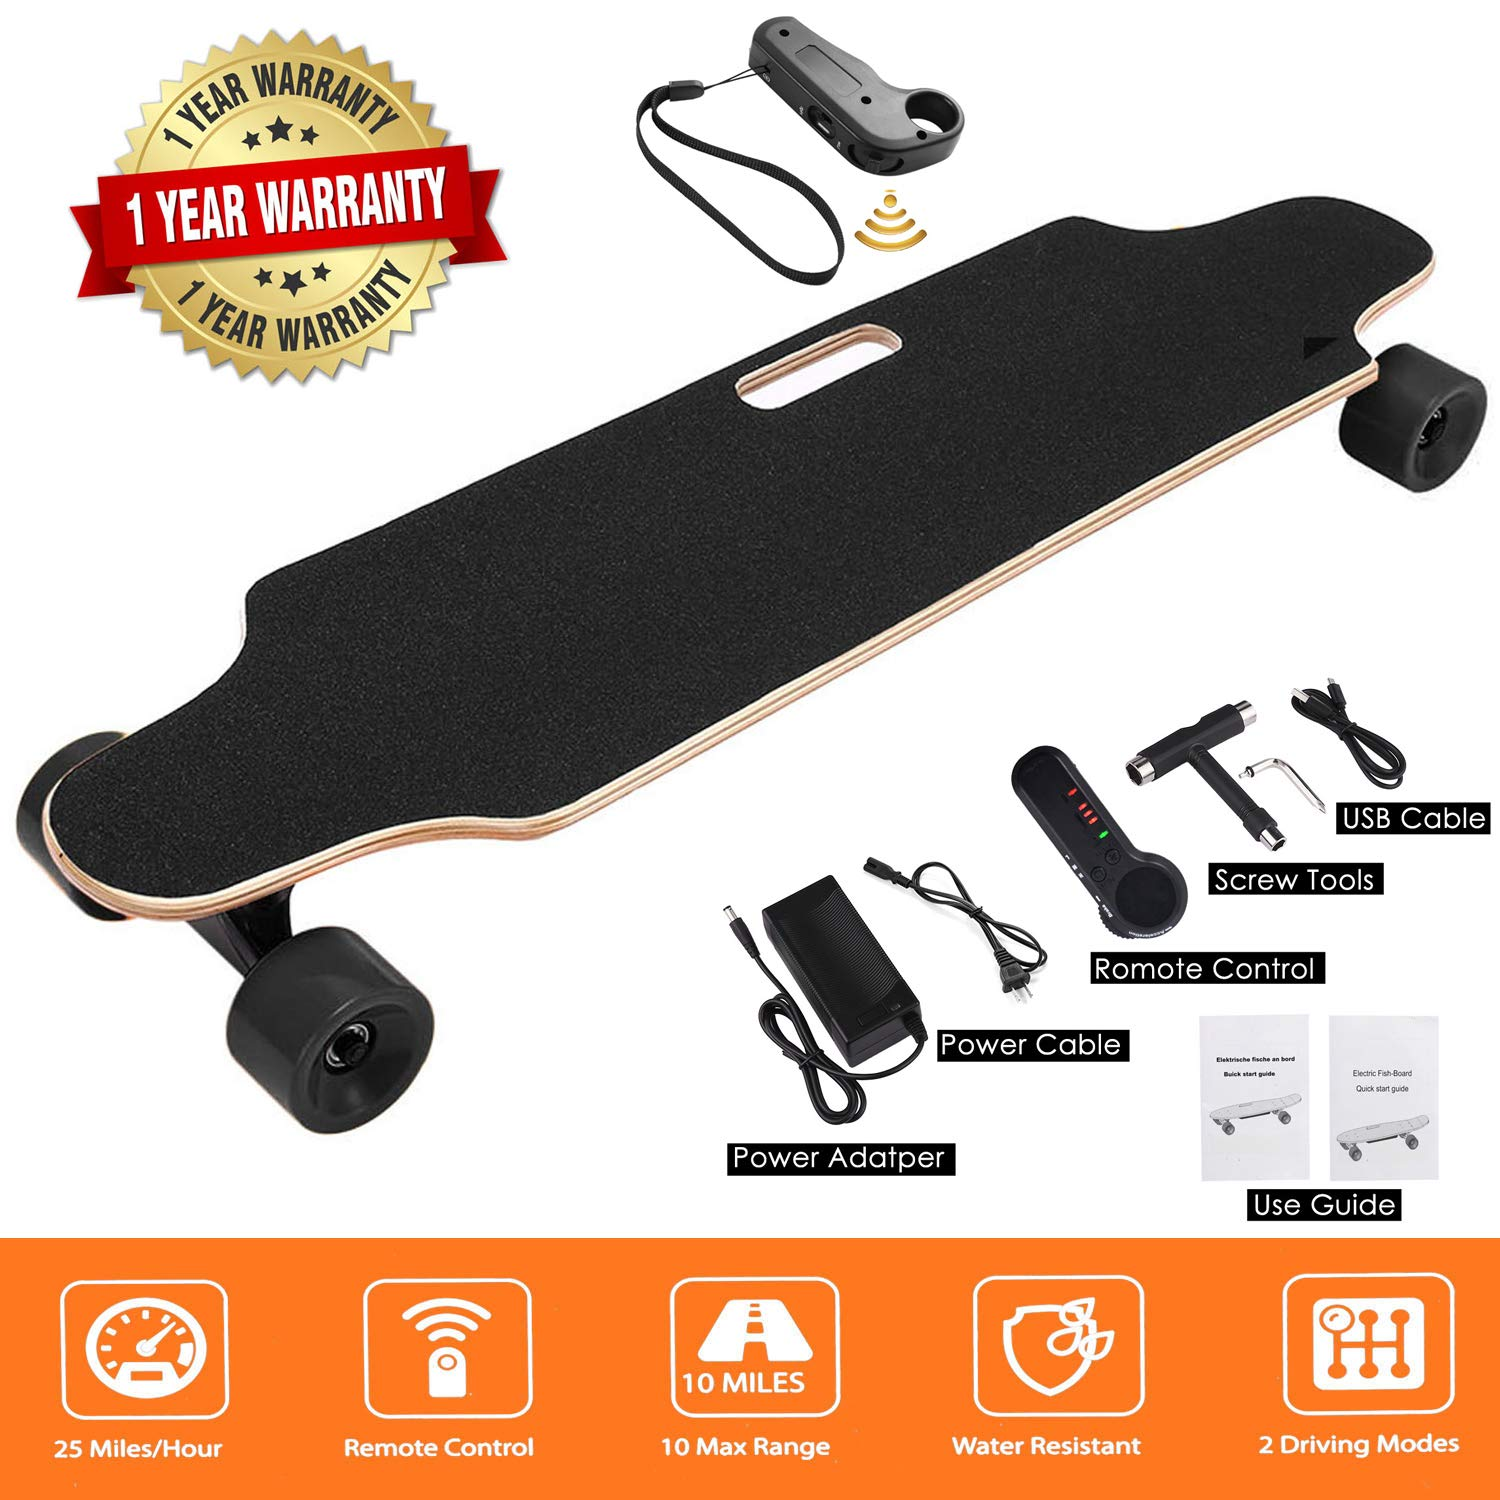 Miageek Youth Electric Fish-Board Skateboard ,12 MPH Top Speed, 350W Motor,7 Layers Maple Longboard with Wireless Remote Control Electirc Board[US Stock] (35.4 x 8.0 x 4.7inch - Black)